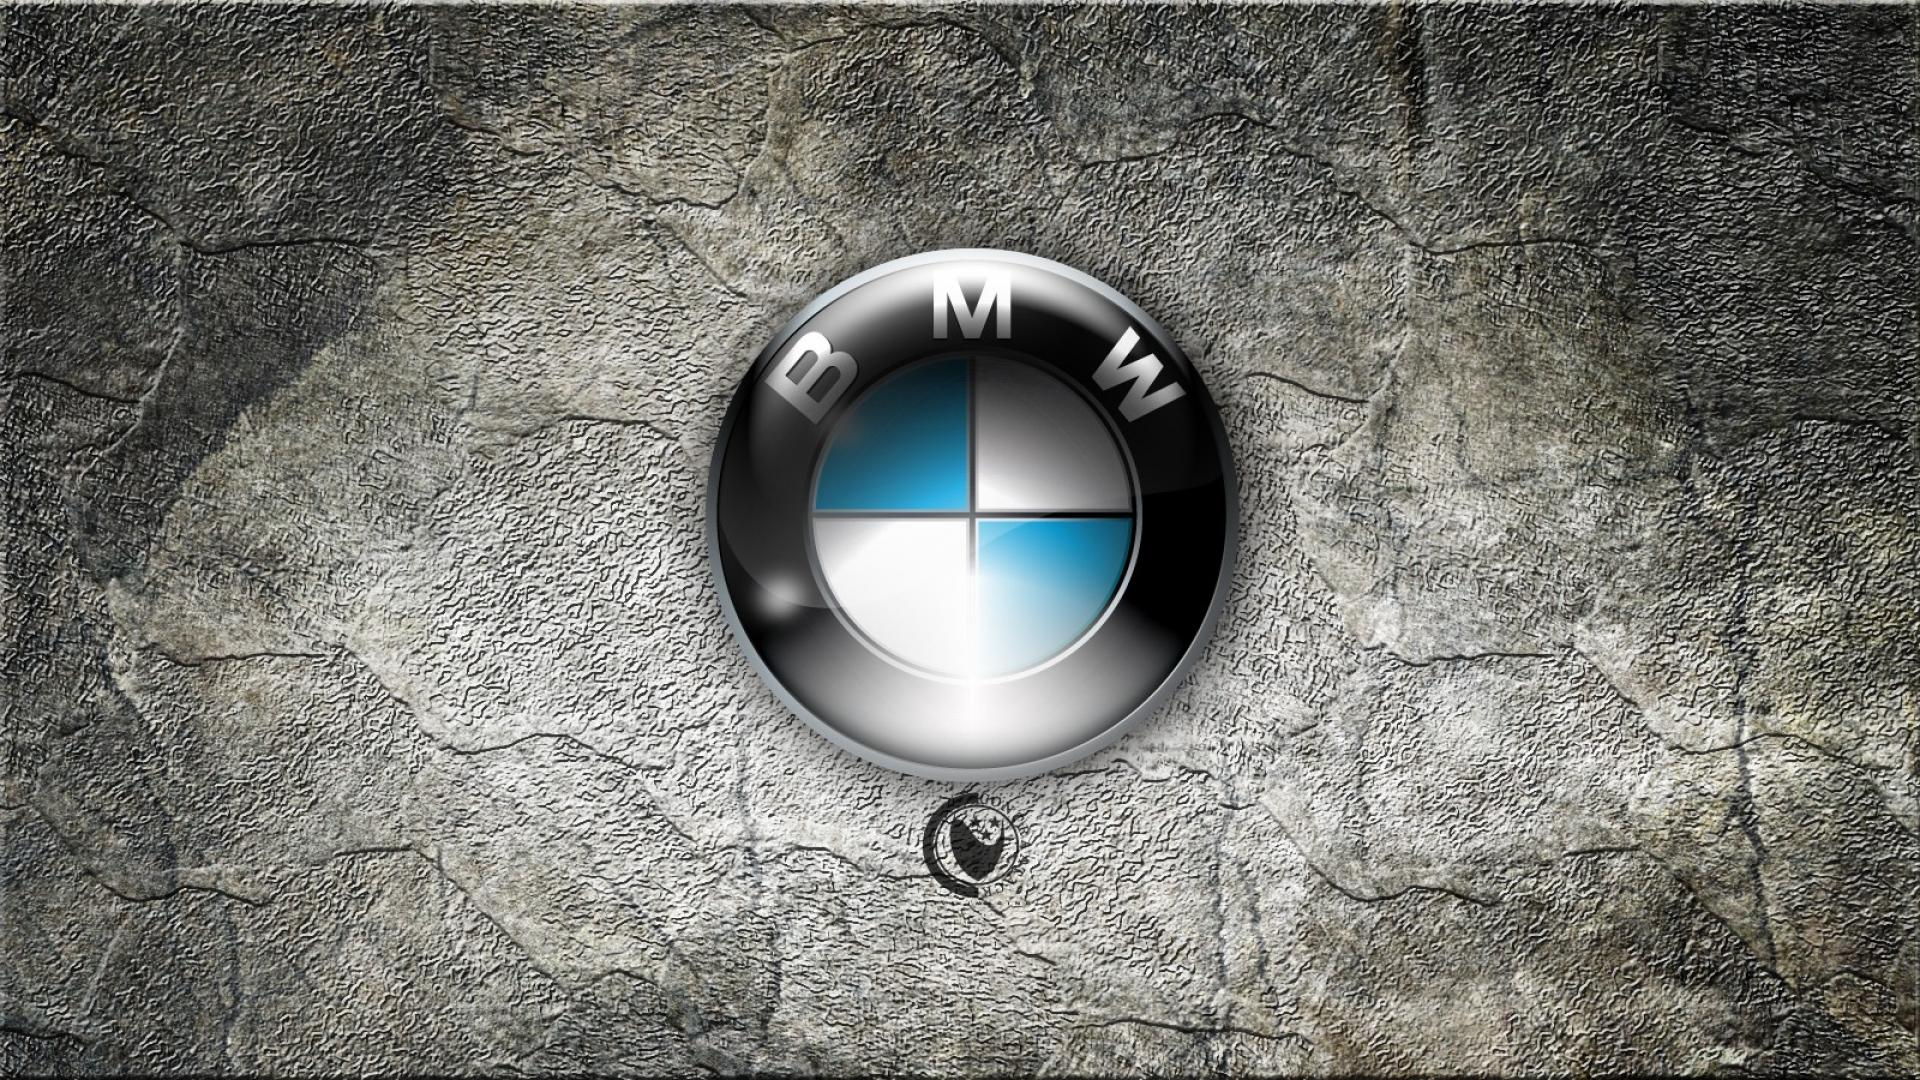 [48+] BMW Logo HD Wallpaper on WallpaperSafari